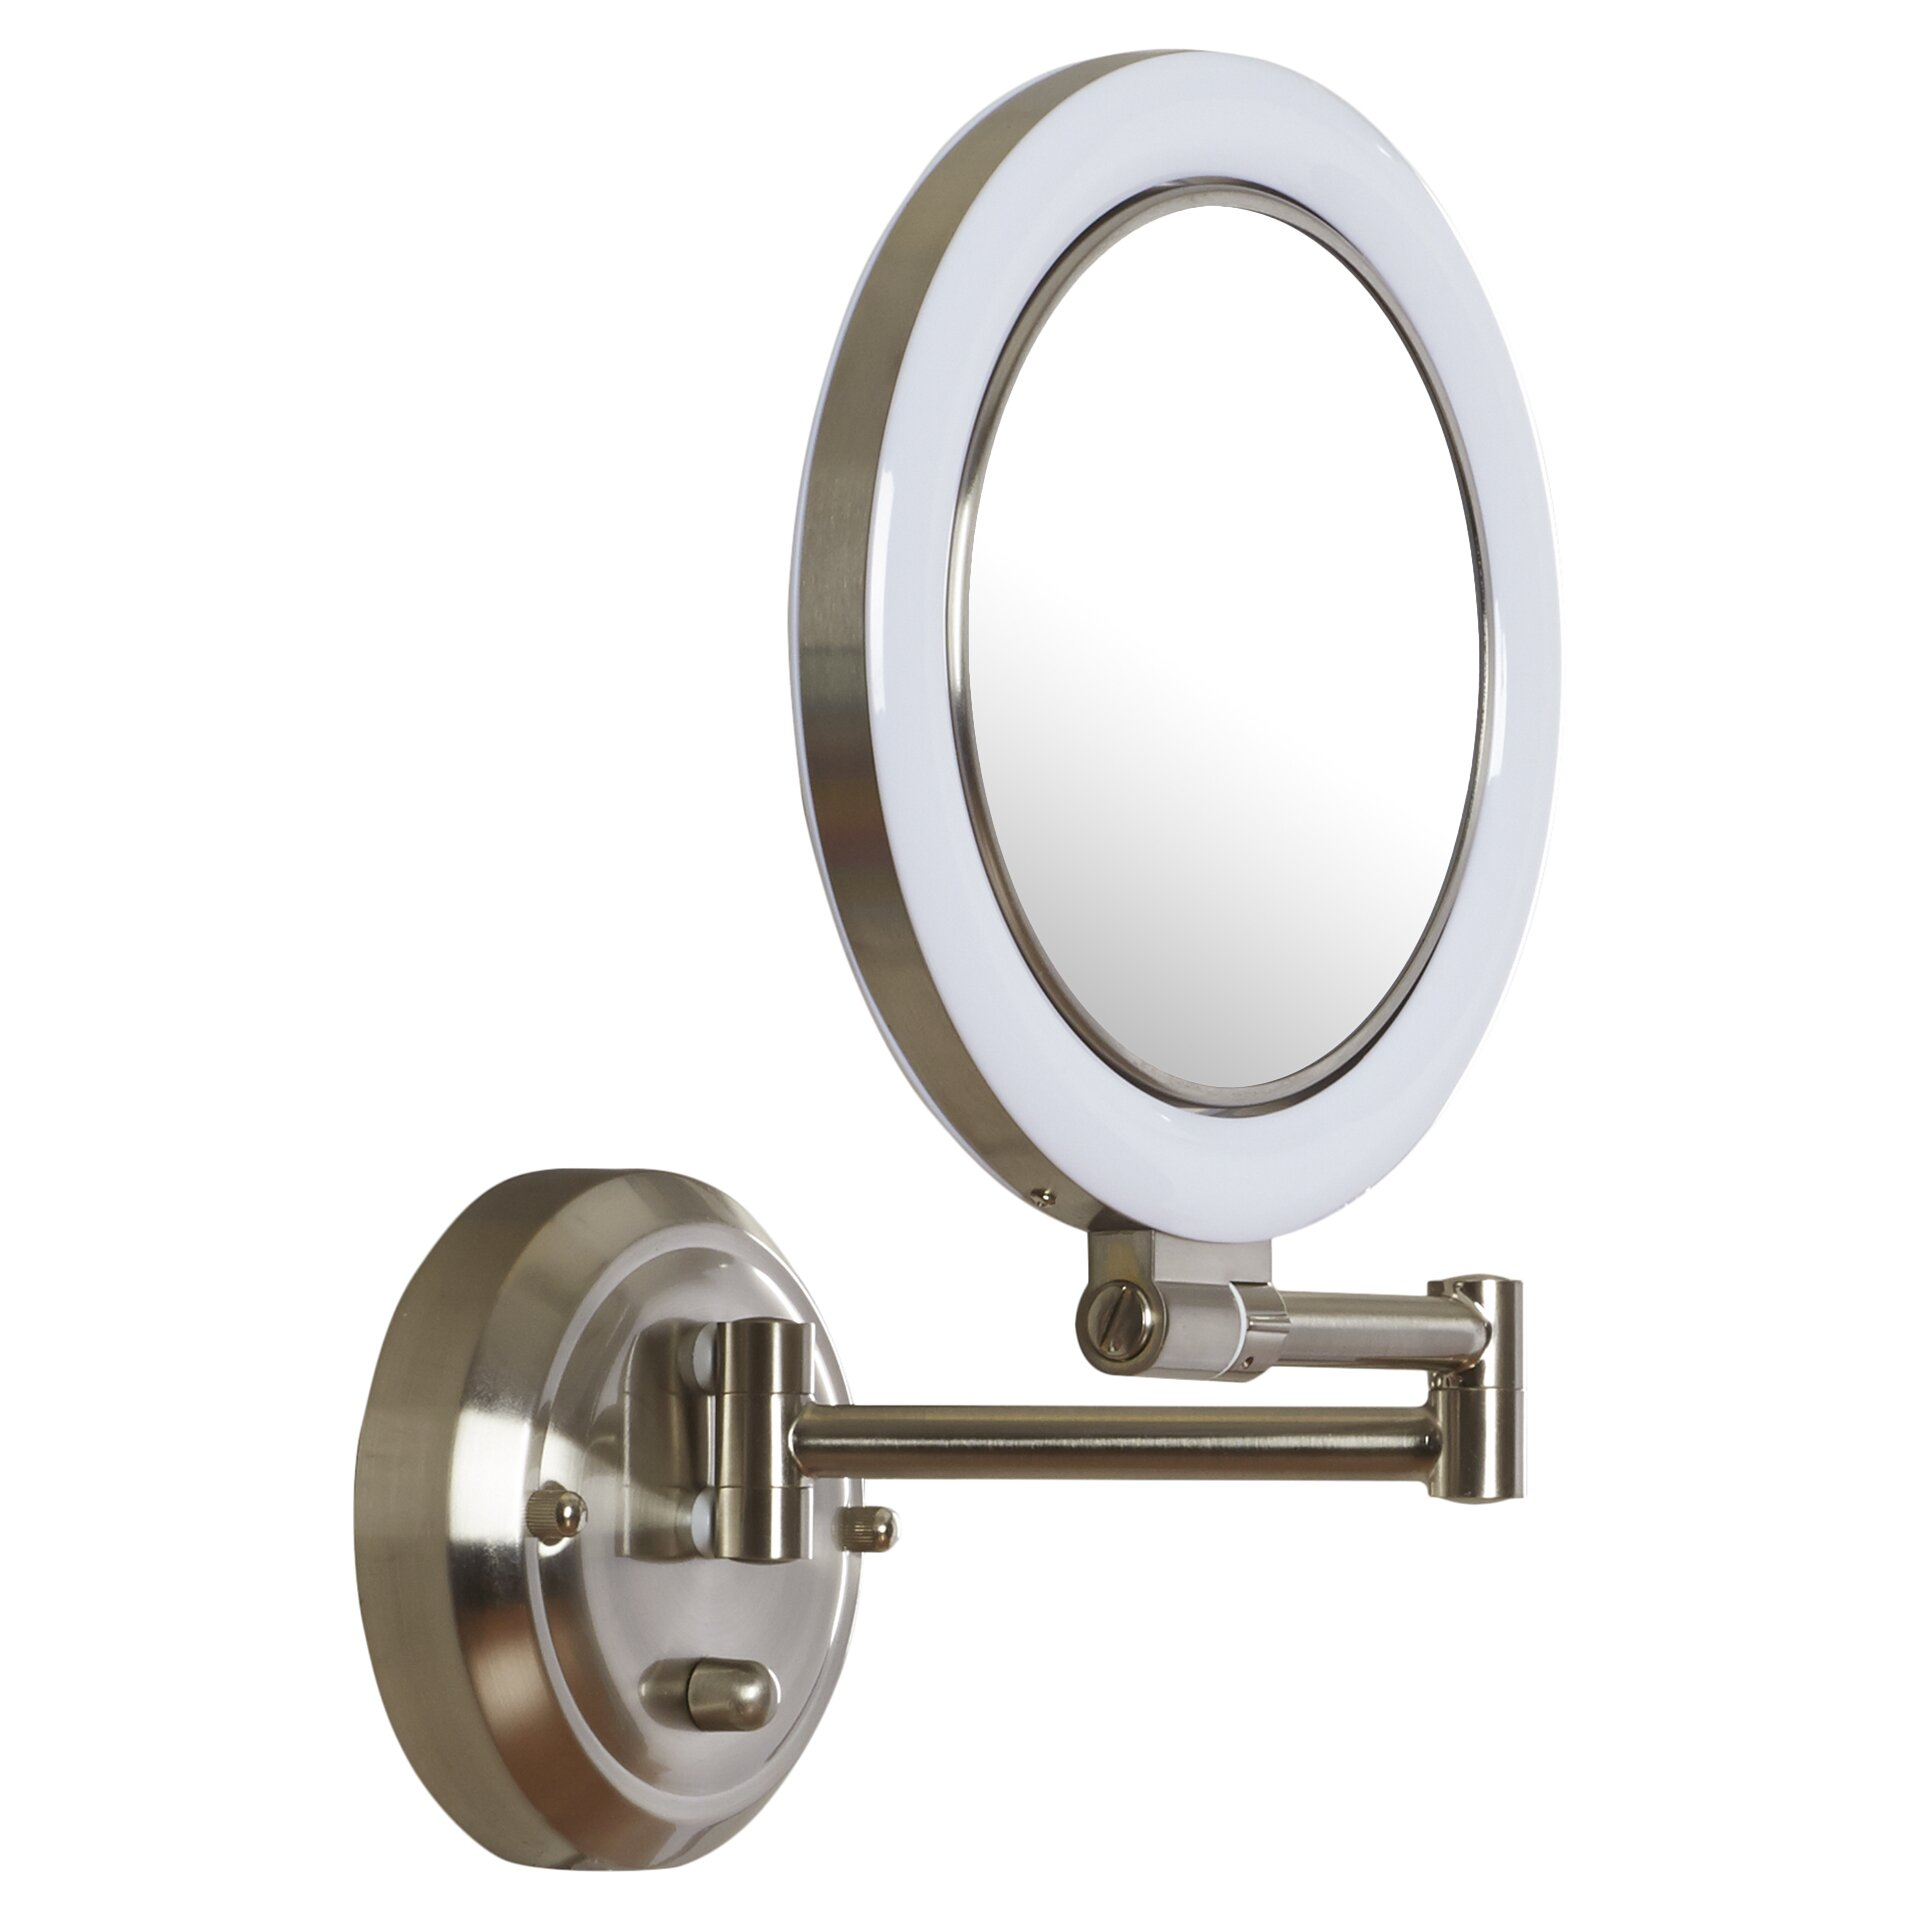 Varick gallery howell dimmable wall mirror in satin nickel for Mirror gallery wall